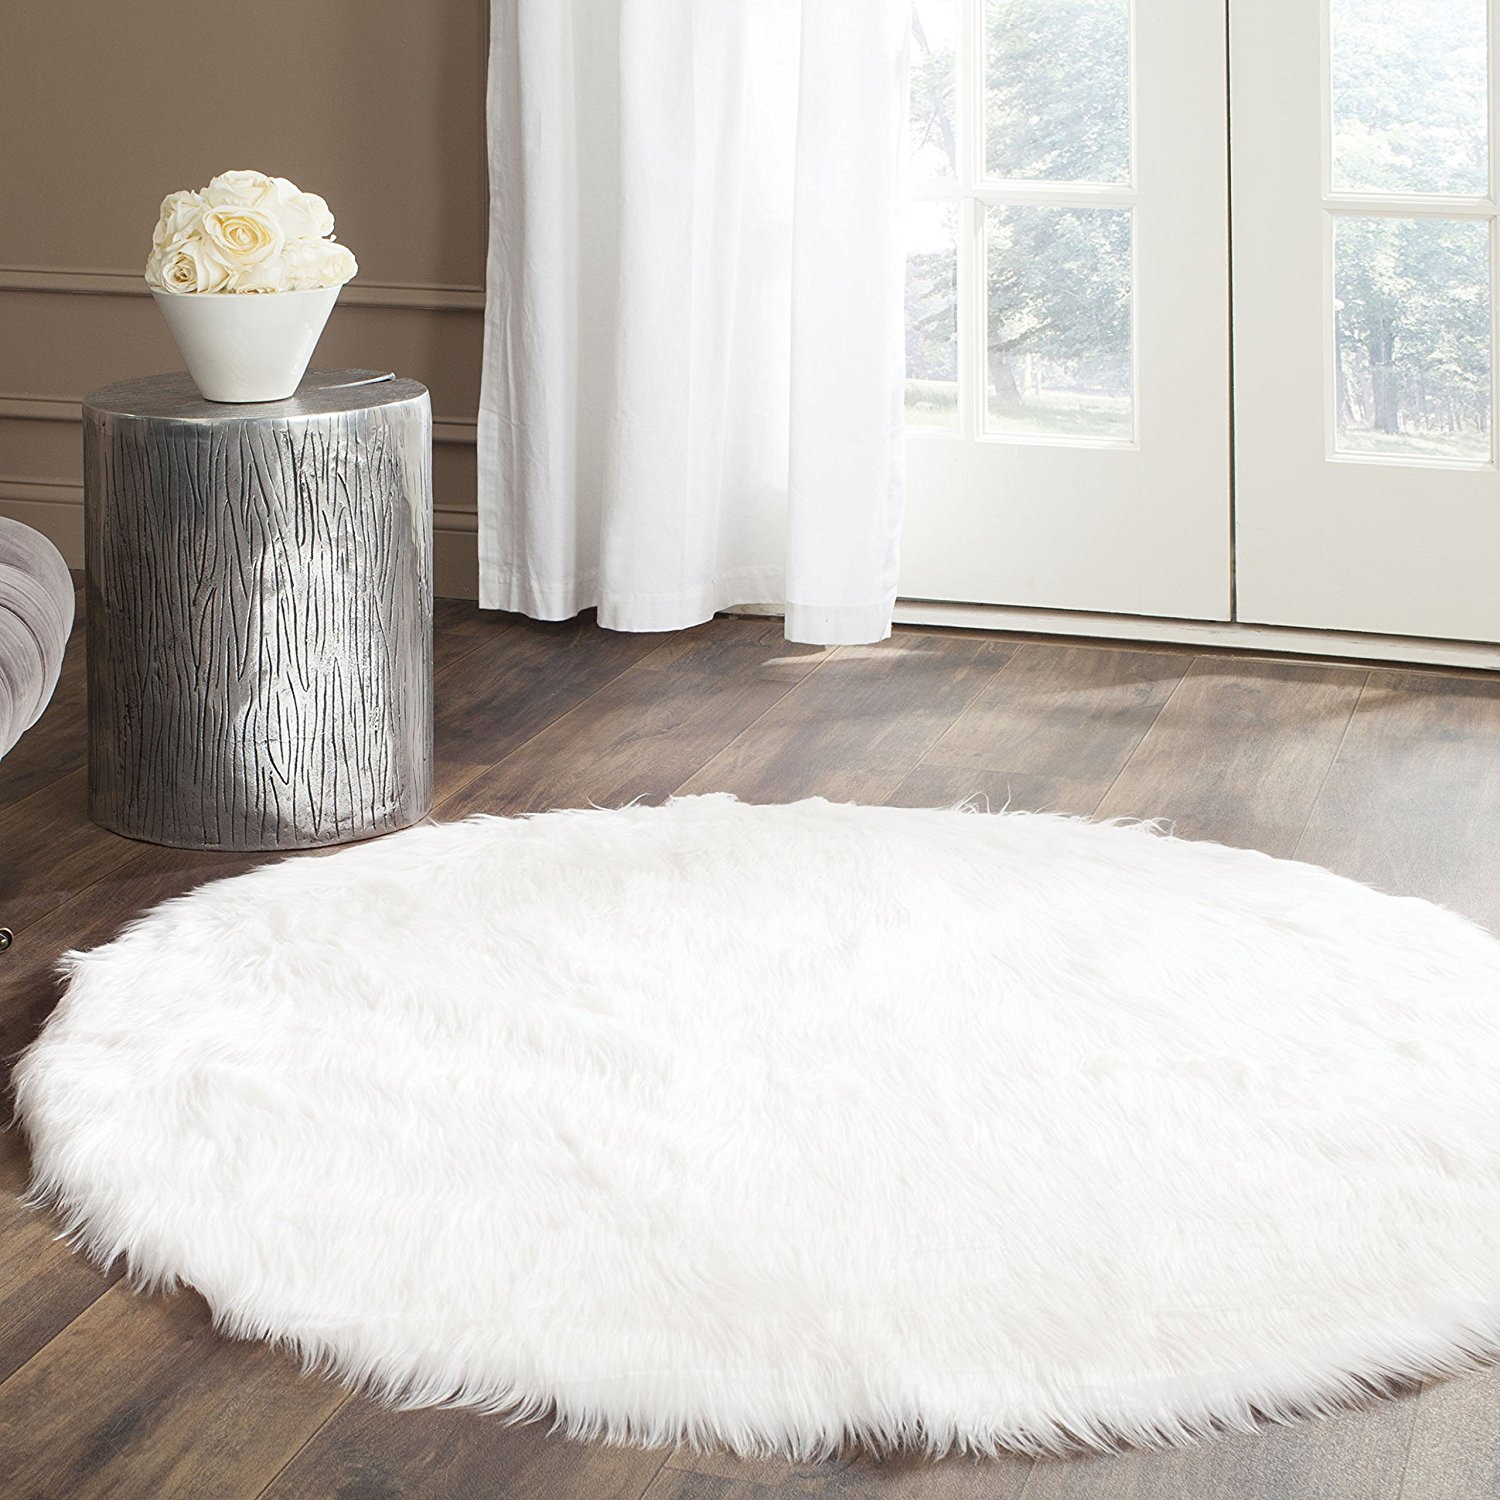 Safavieh Faux Sheepskin Area Shag Rug